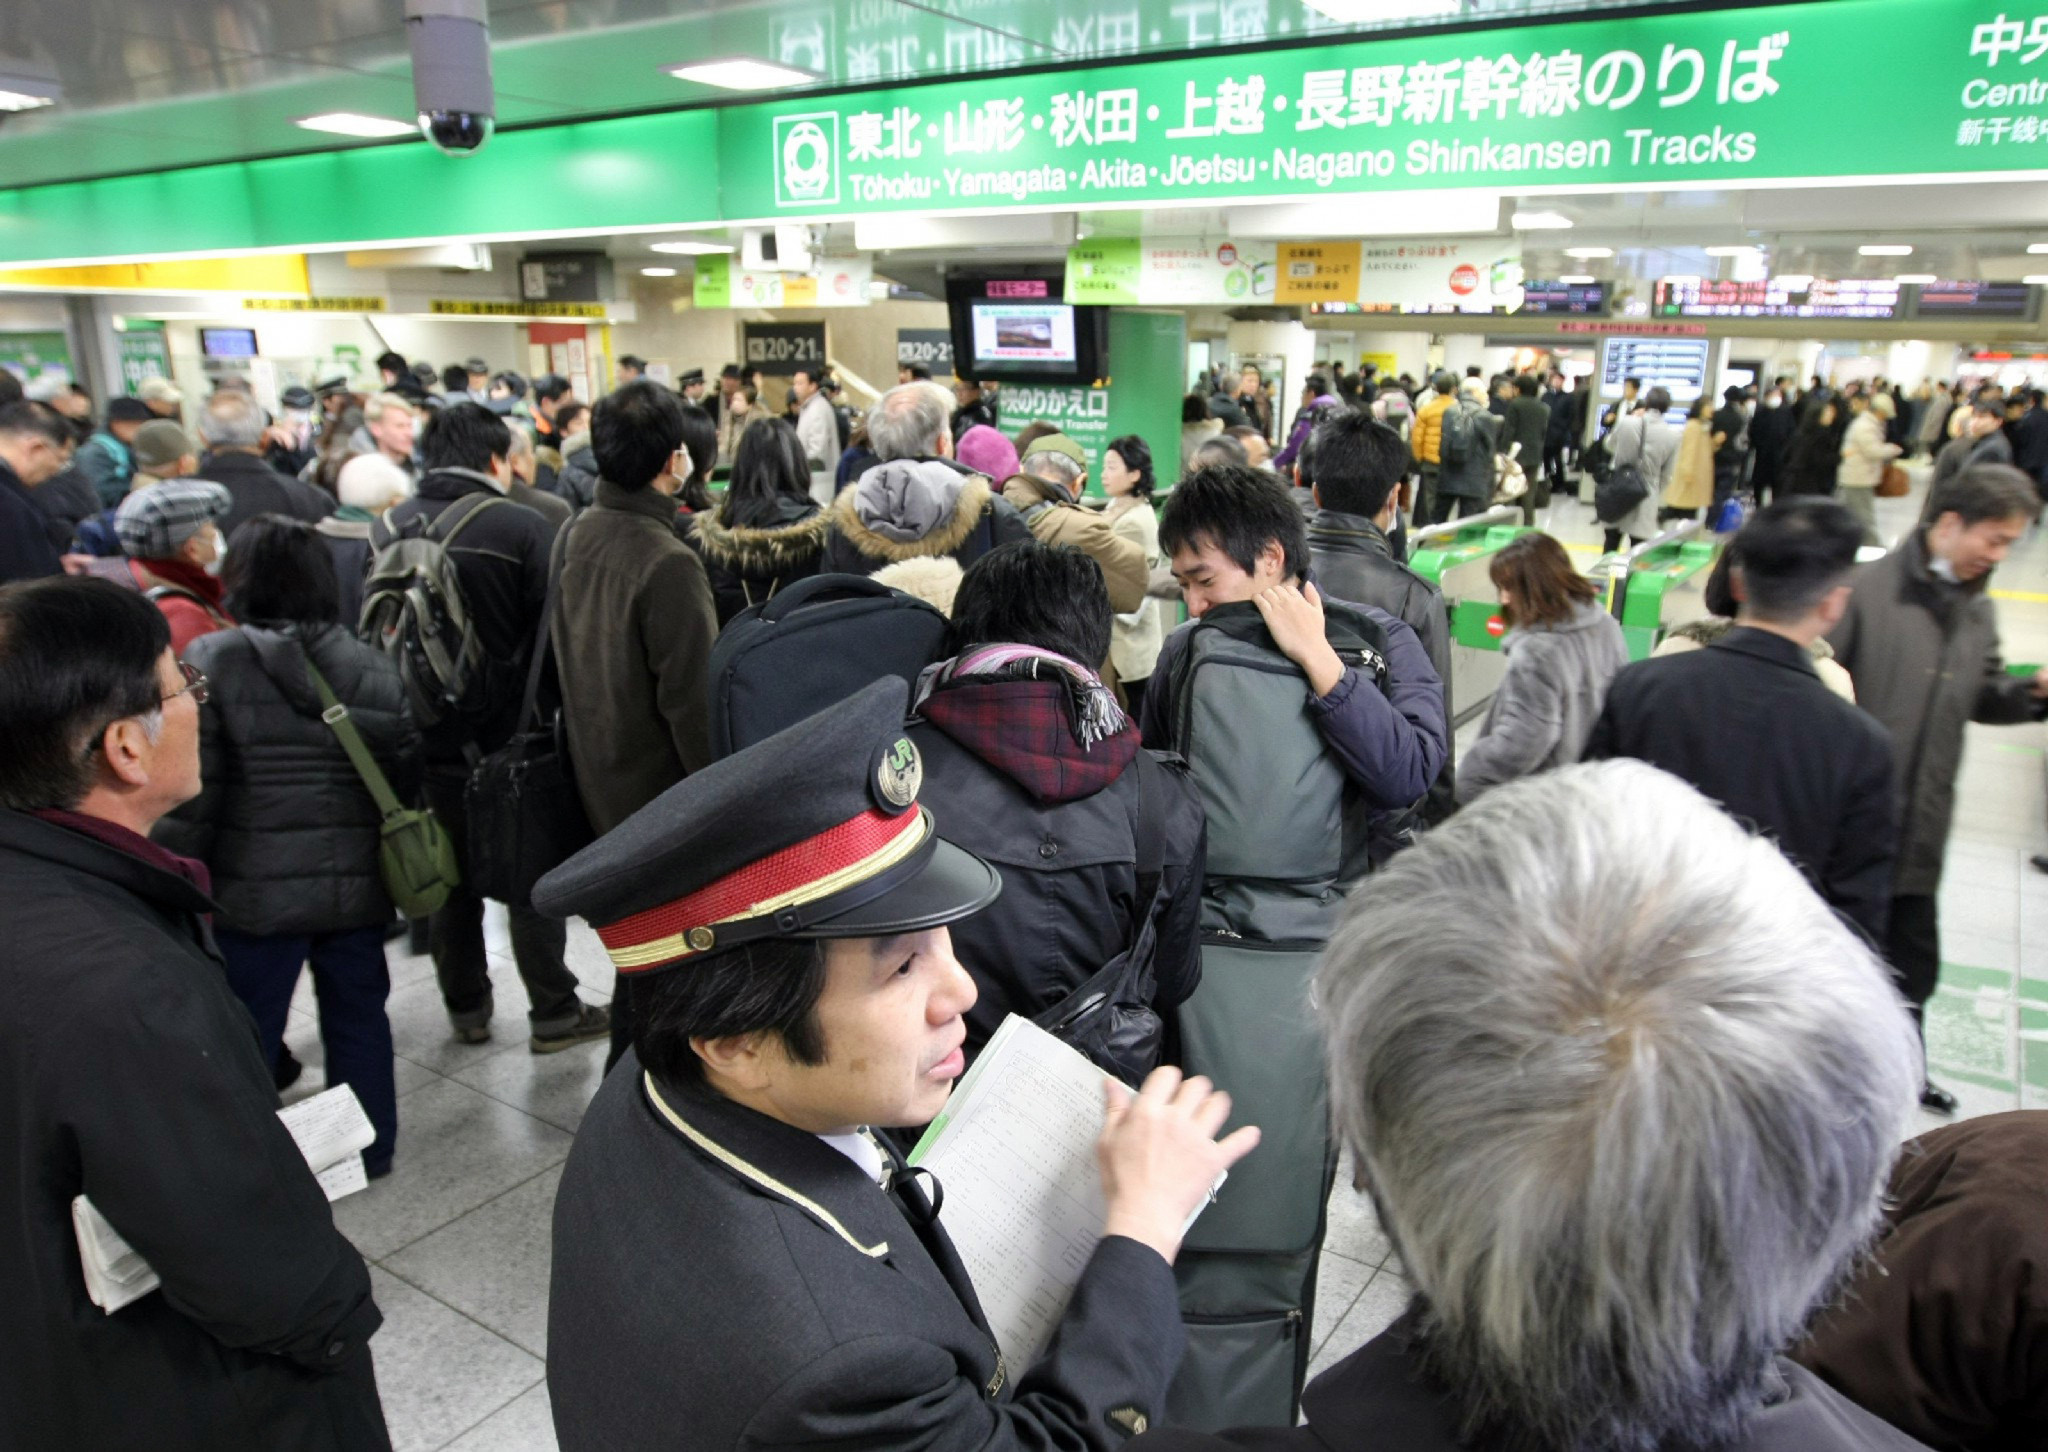 Overcrowding has been highlighted as a key concern for Japan's public transport system ©Getty Images